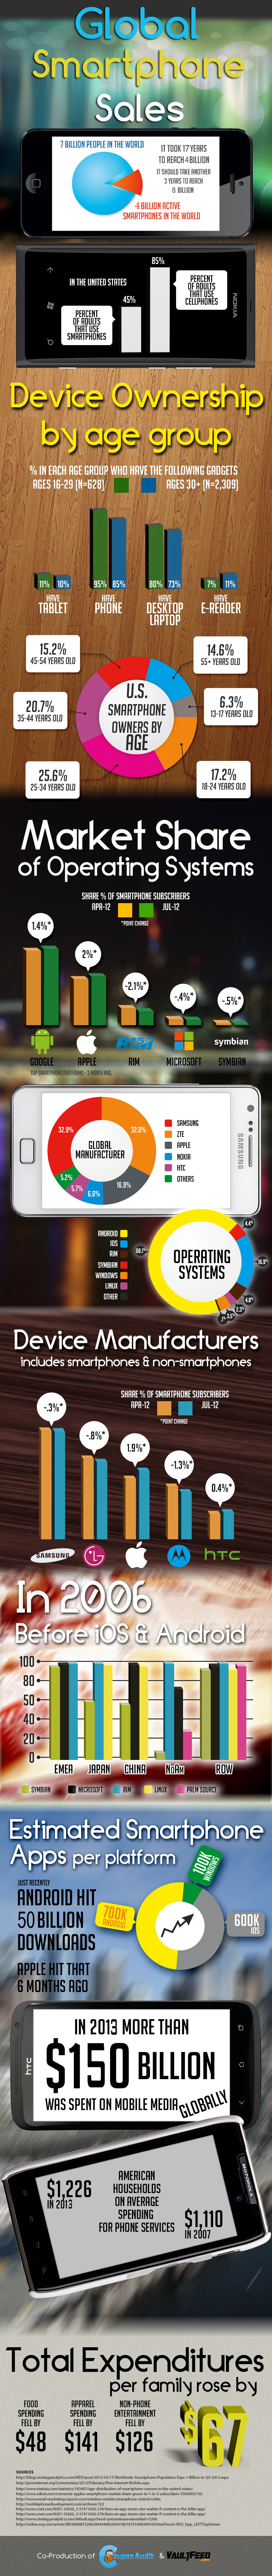 Global-Smartphone-Sales5